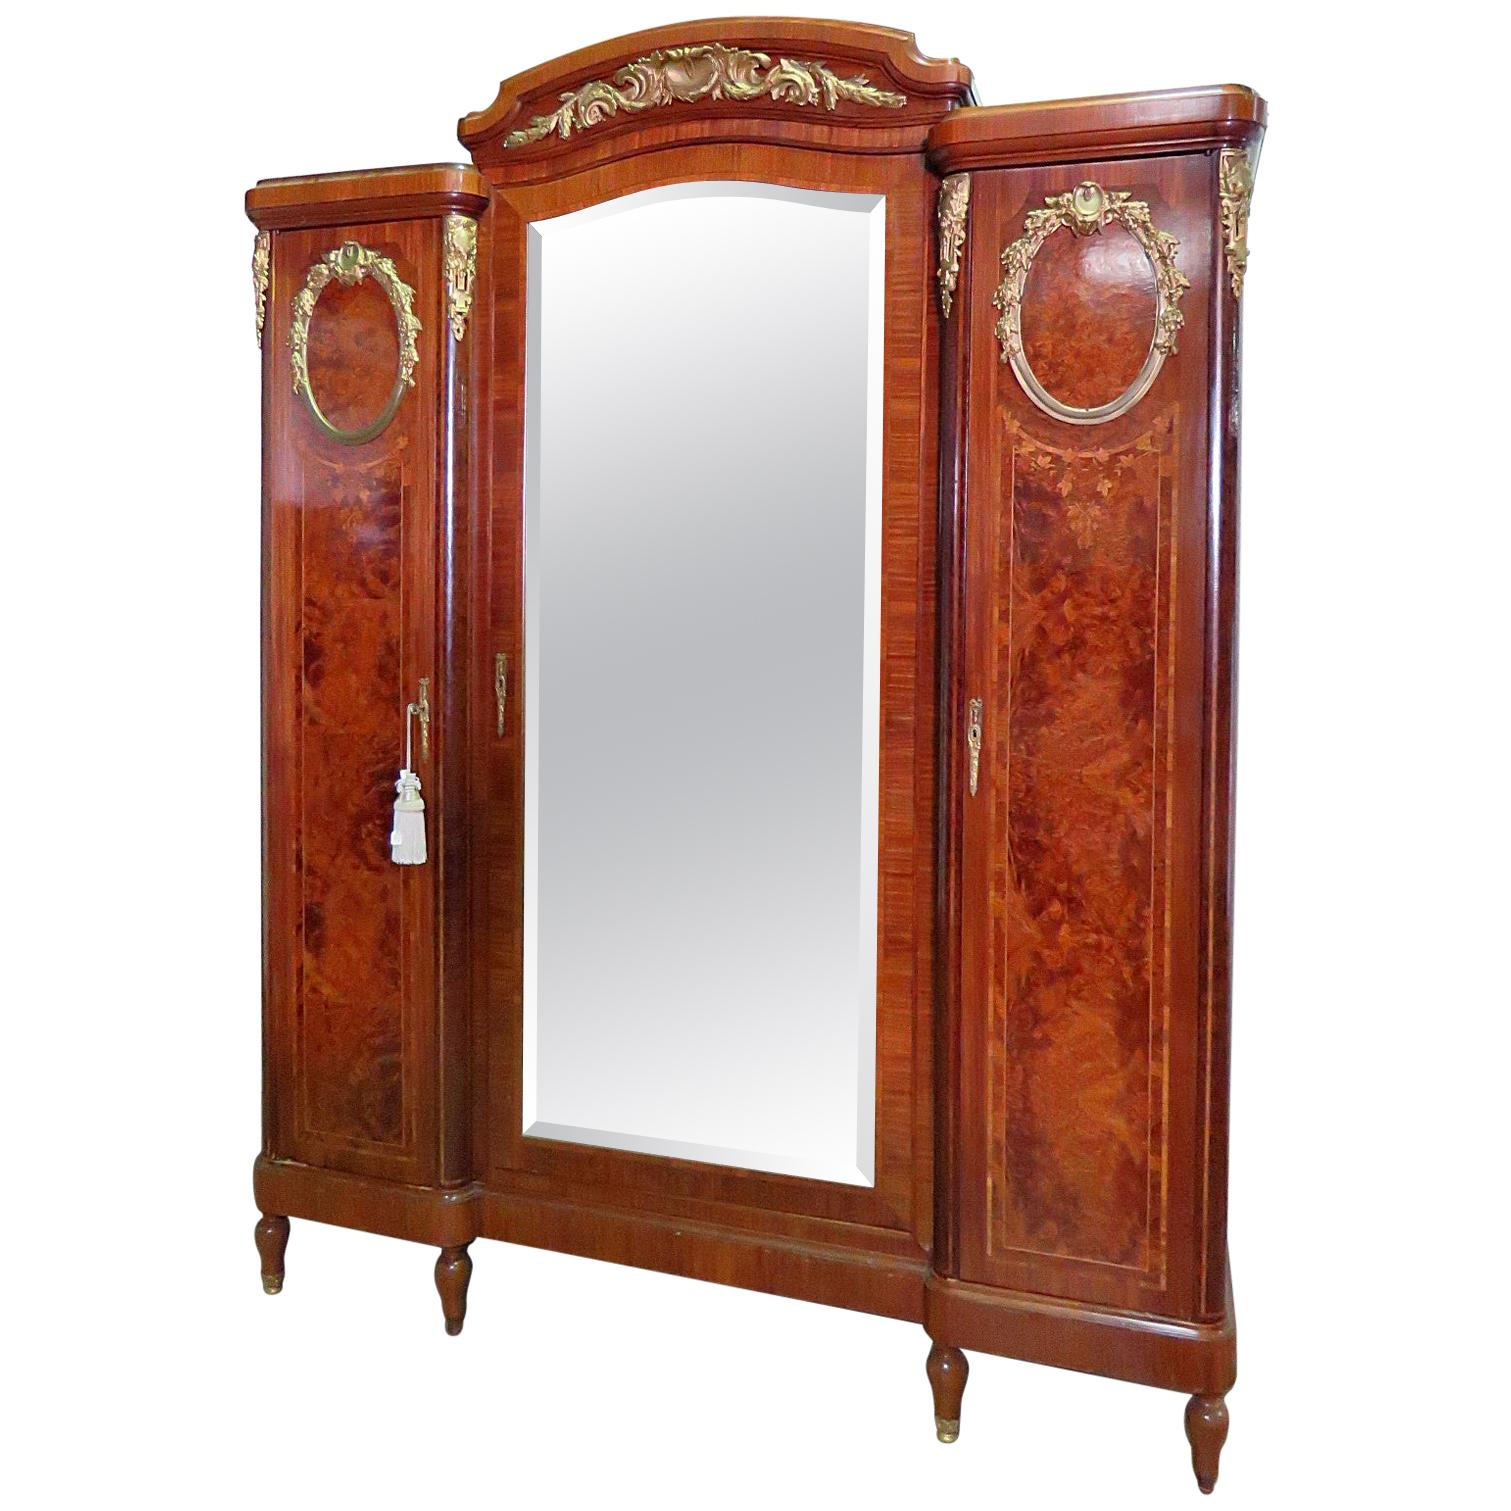 Armoire Dressing 150 Cm Metal Wardrobes And Armoires 498 For Sale At 1stdibs